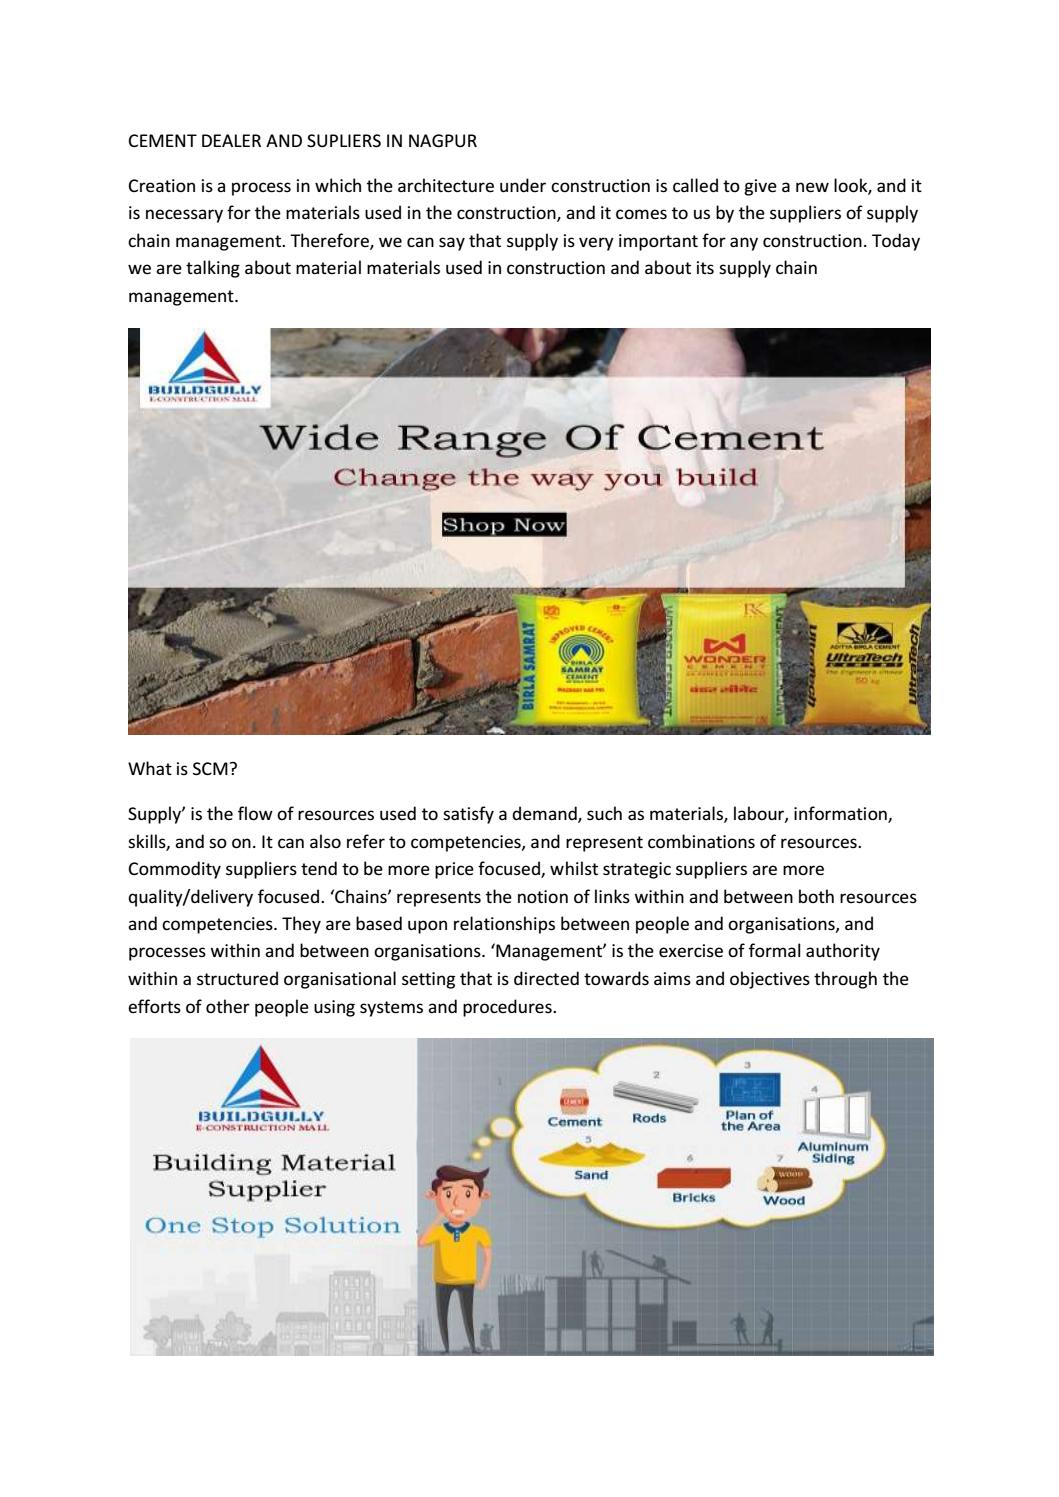 Buy Cement Online | Cement Dealer in Nagpur  by Buildgully - issuu